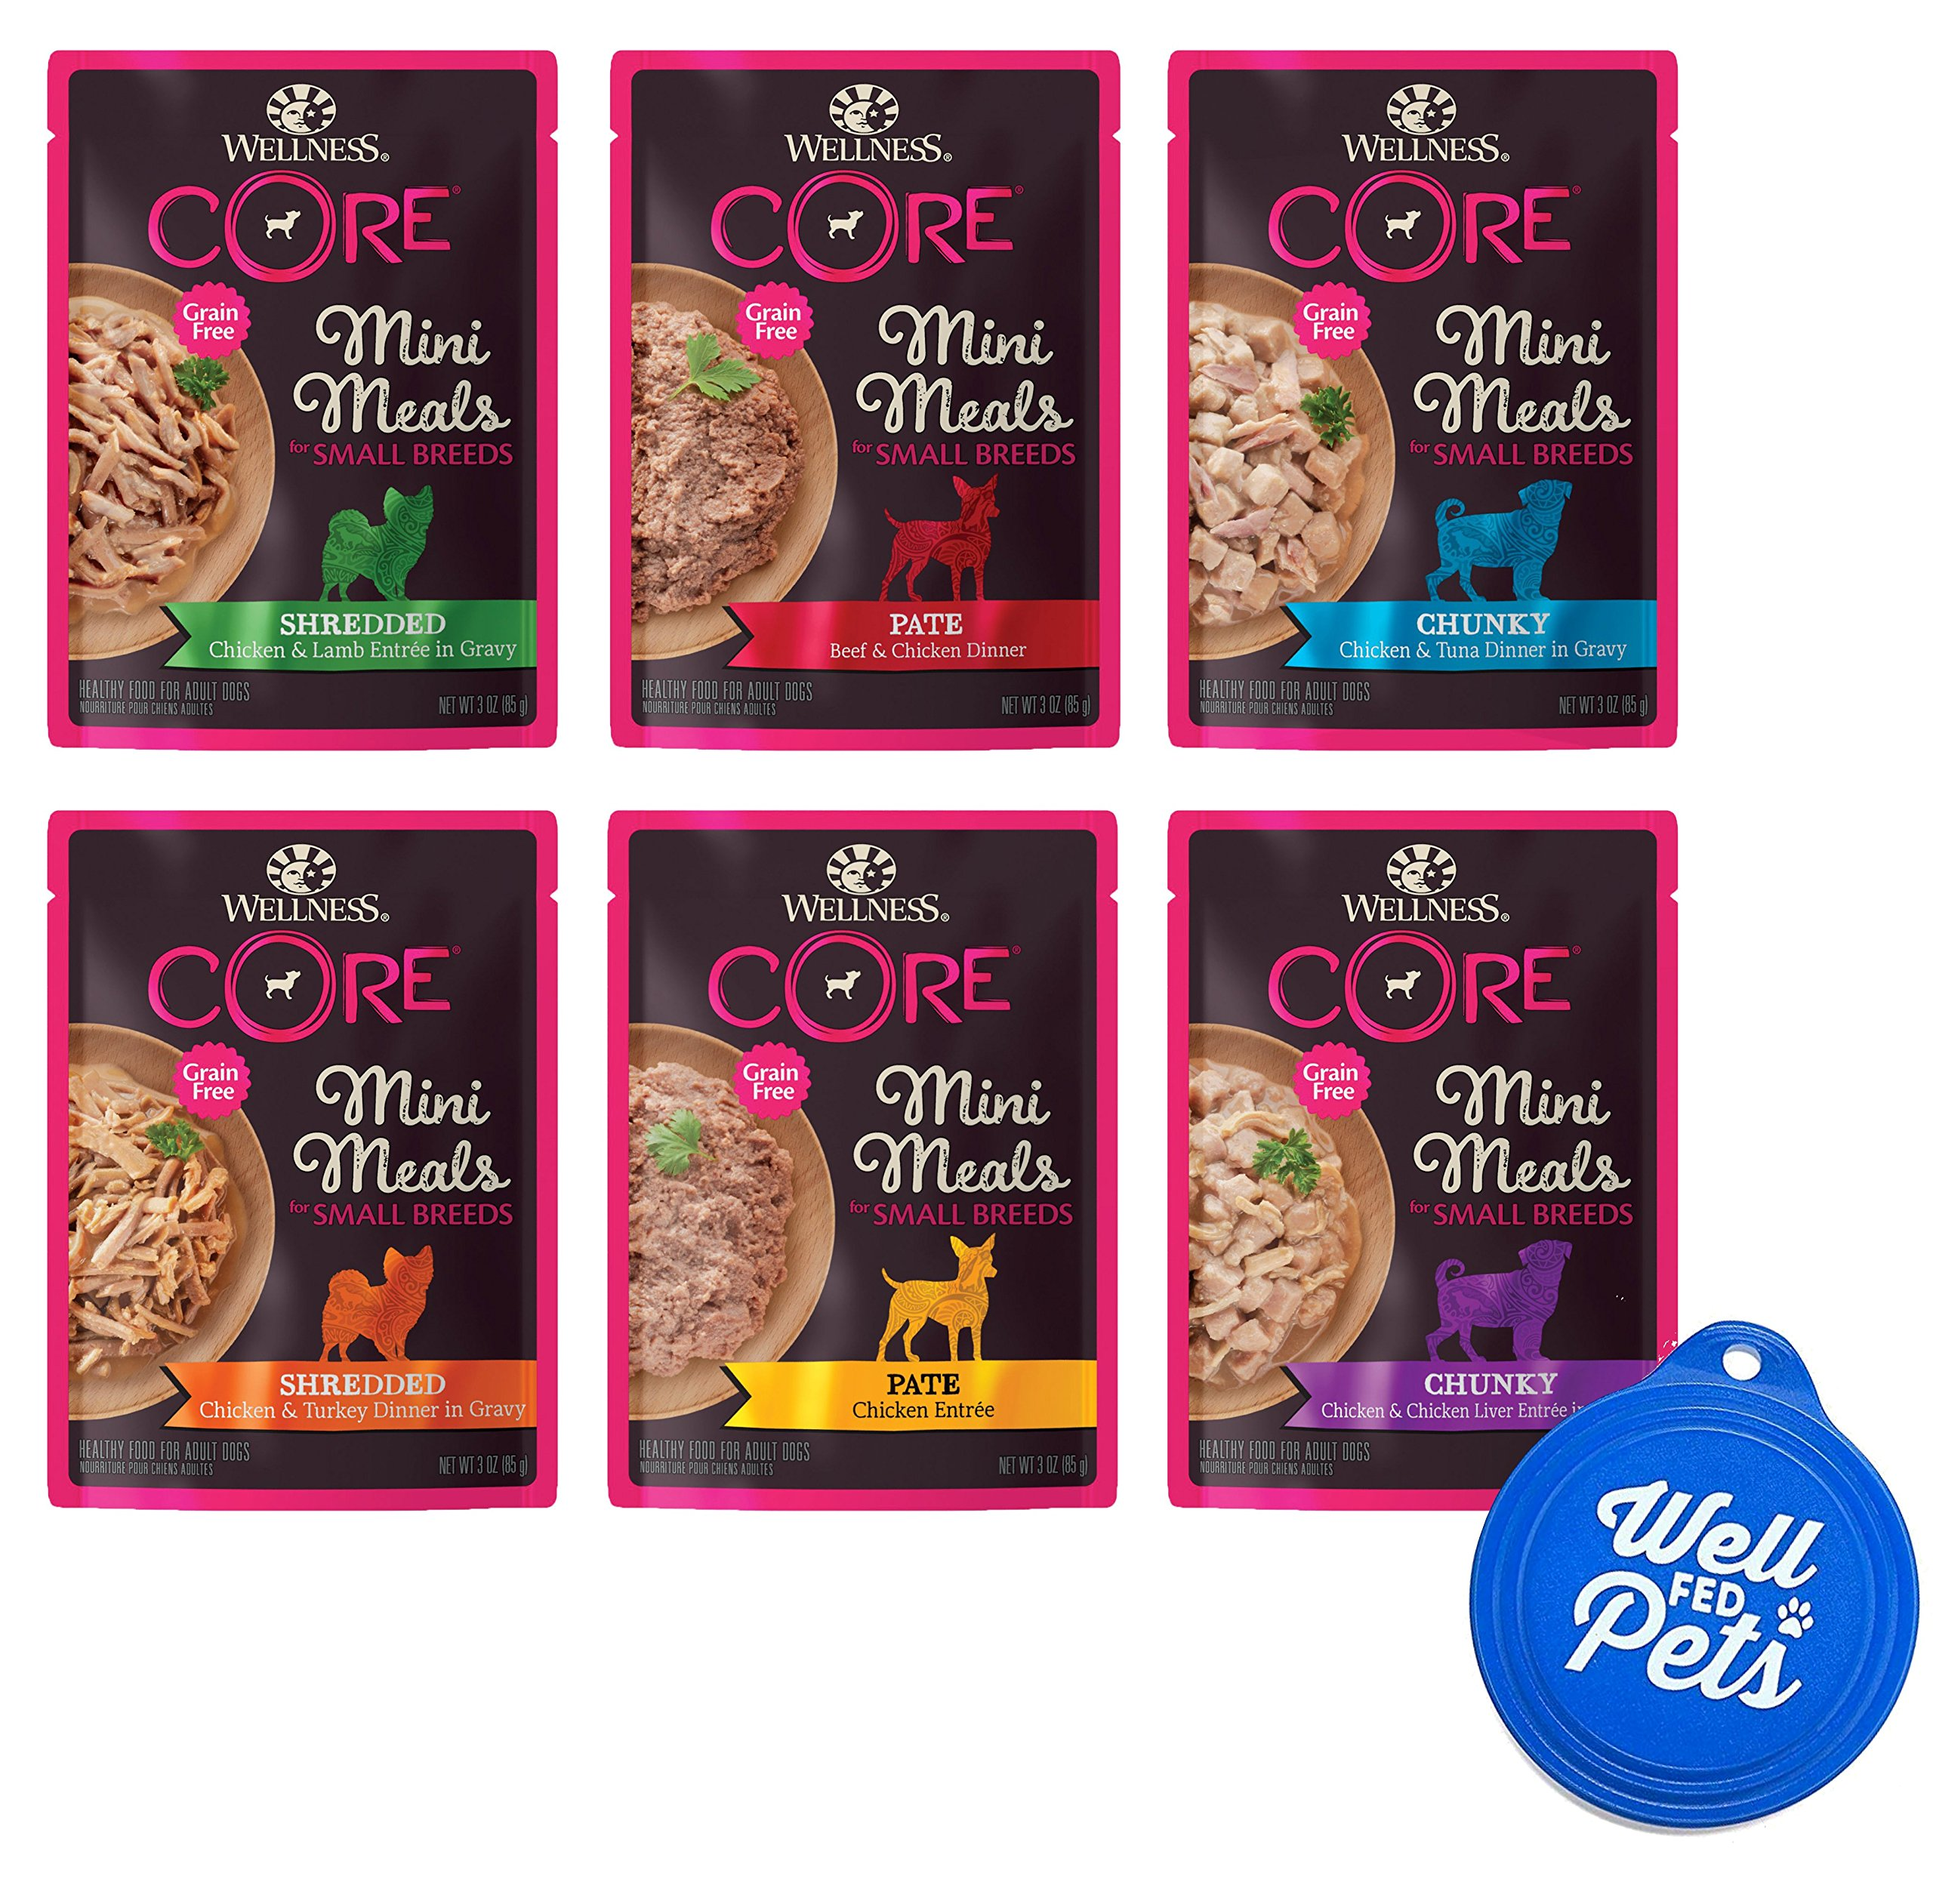 Well Fed Pets Wellness CORE Mini Meals for Small Breeds Natural Grain Free Wet Dog Food Pouches Variety Pack, 6 Flavors, 3-Ounces Each (12 Total Pouches) and 1 Pet Food Lid